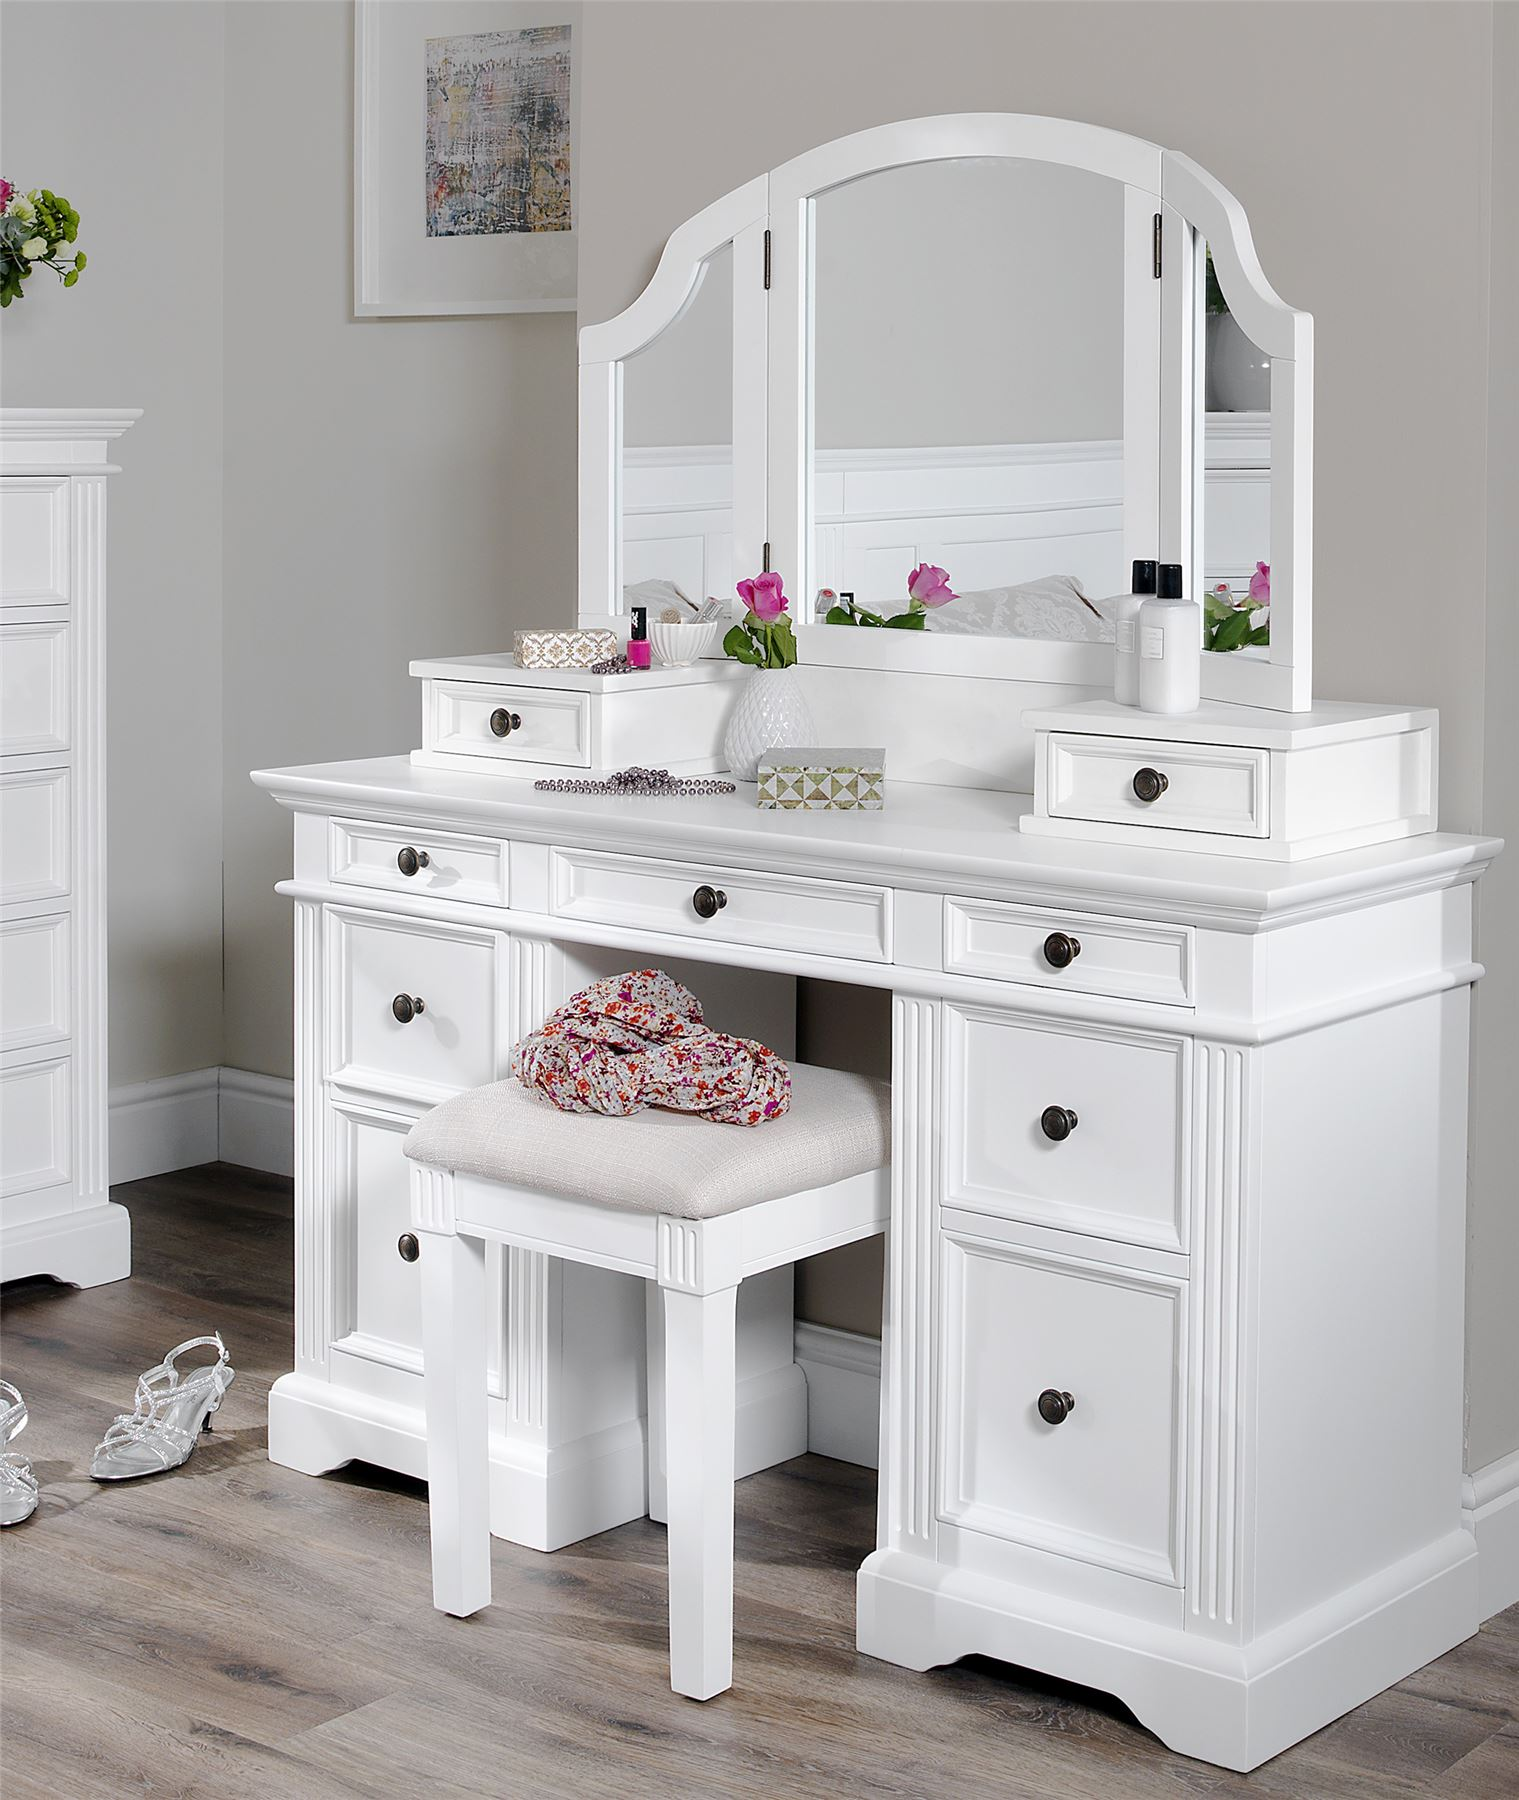 Gainsborough white dressing table set dressing table for Vanity dressing table